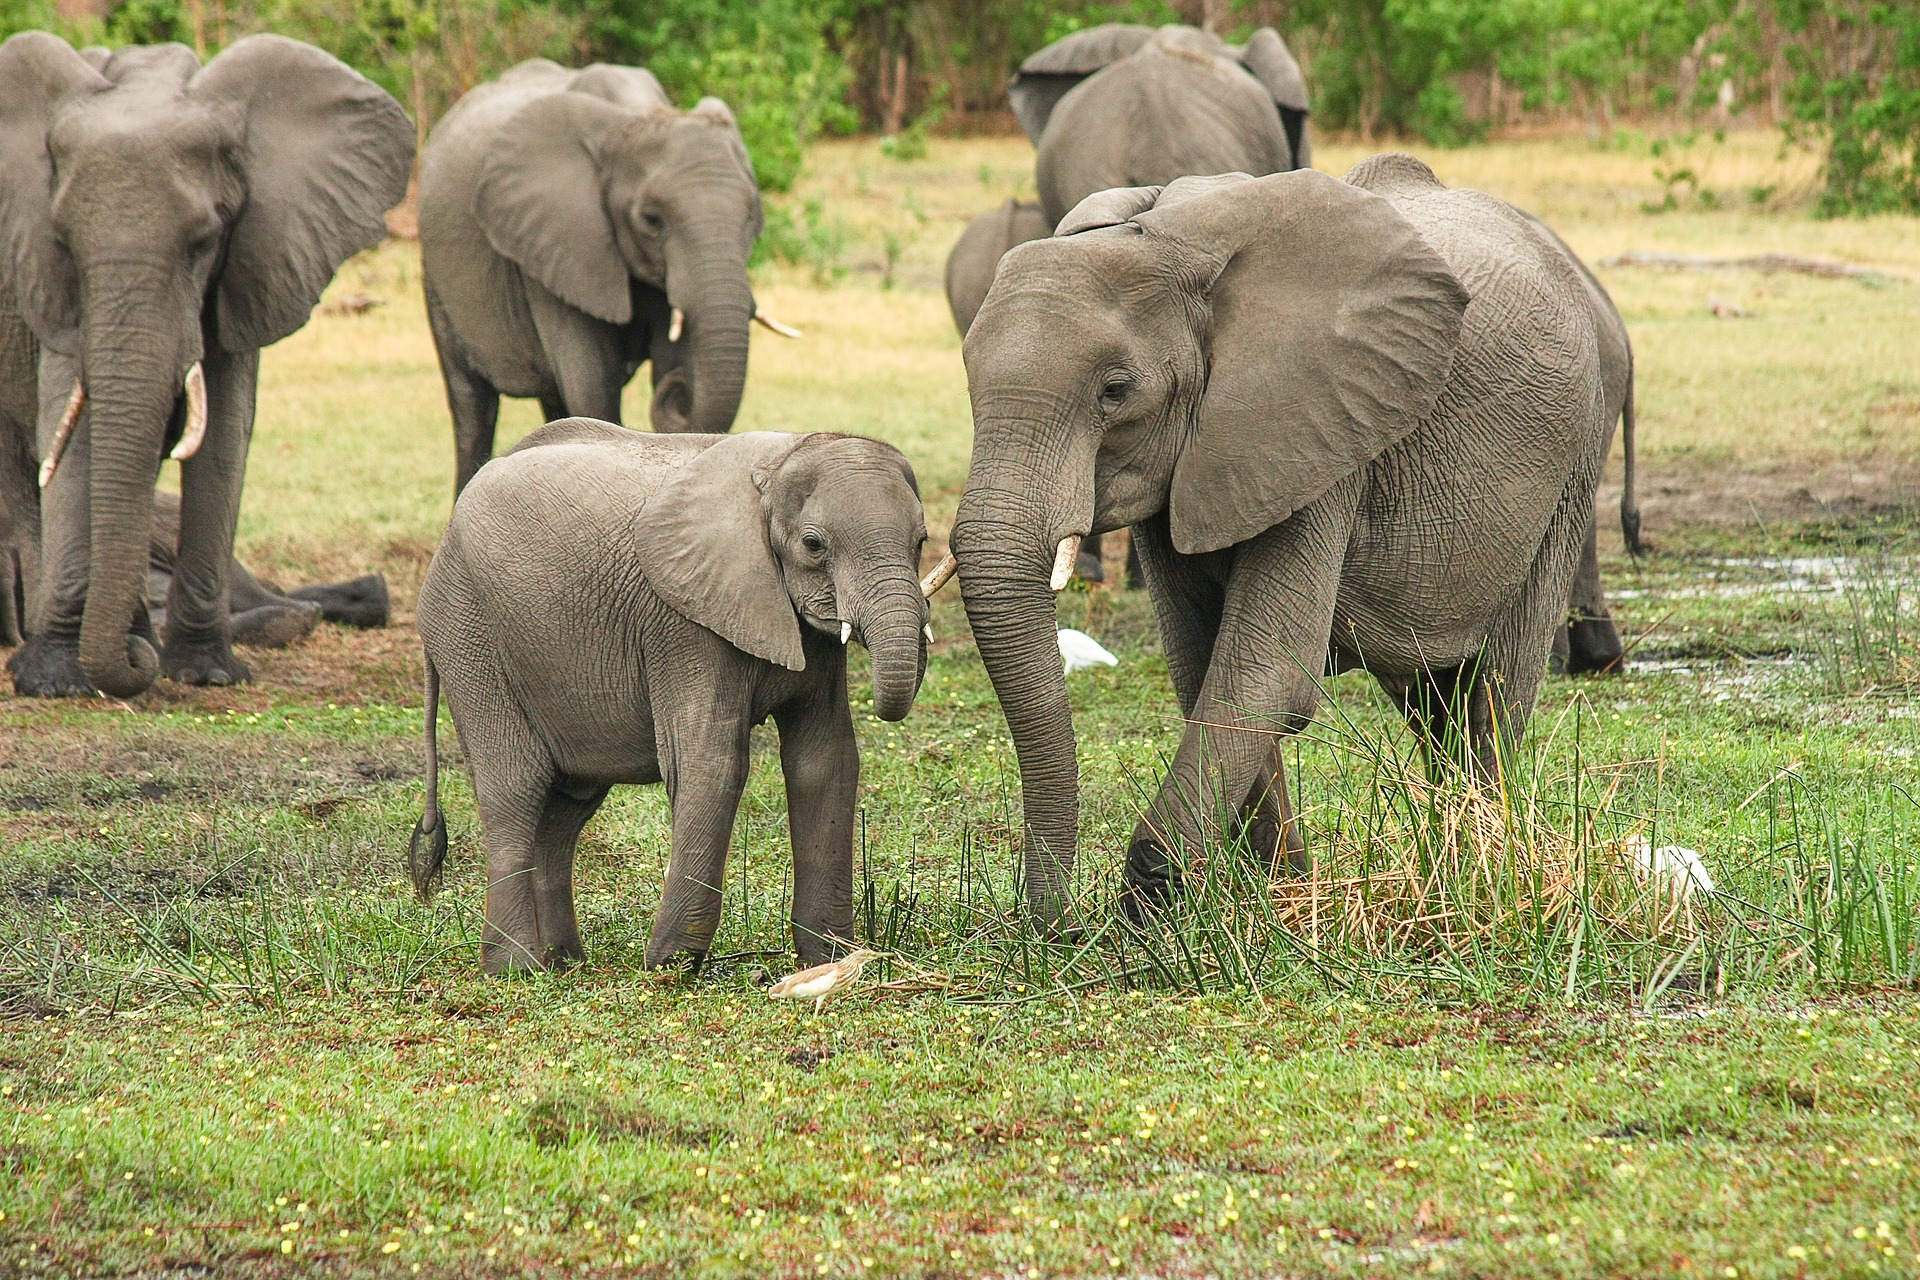 Near-Total Ban On Sending Wild Elephants To Zoos Approved